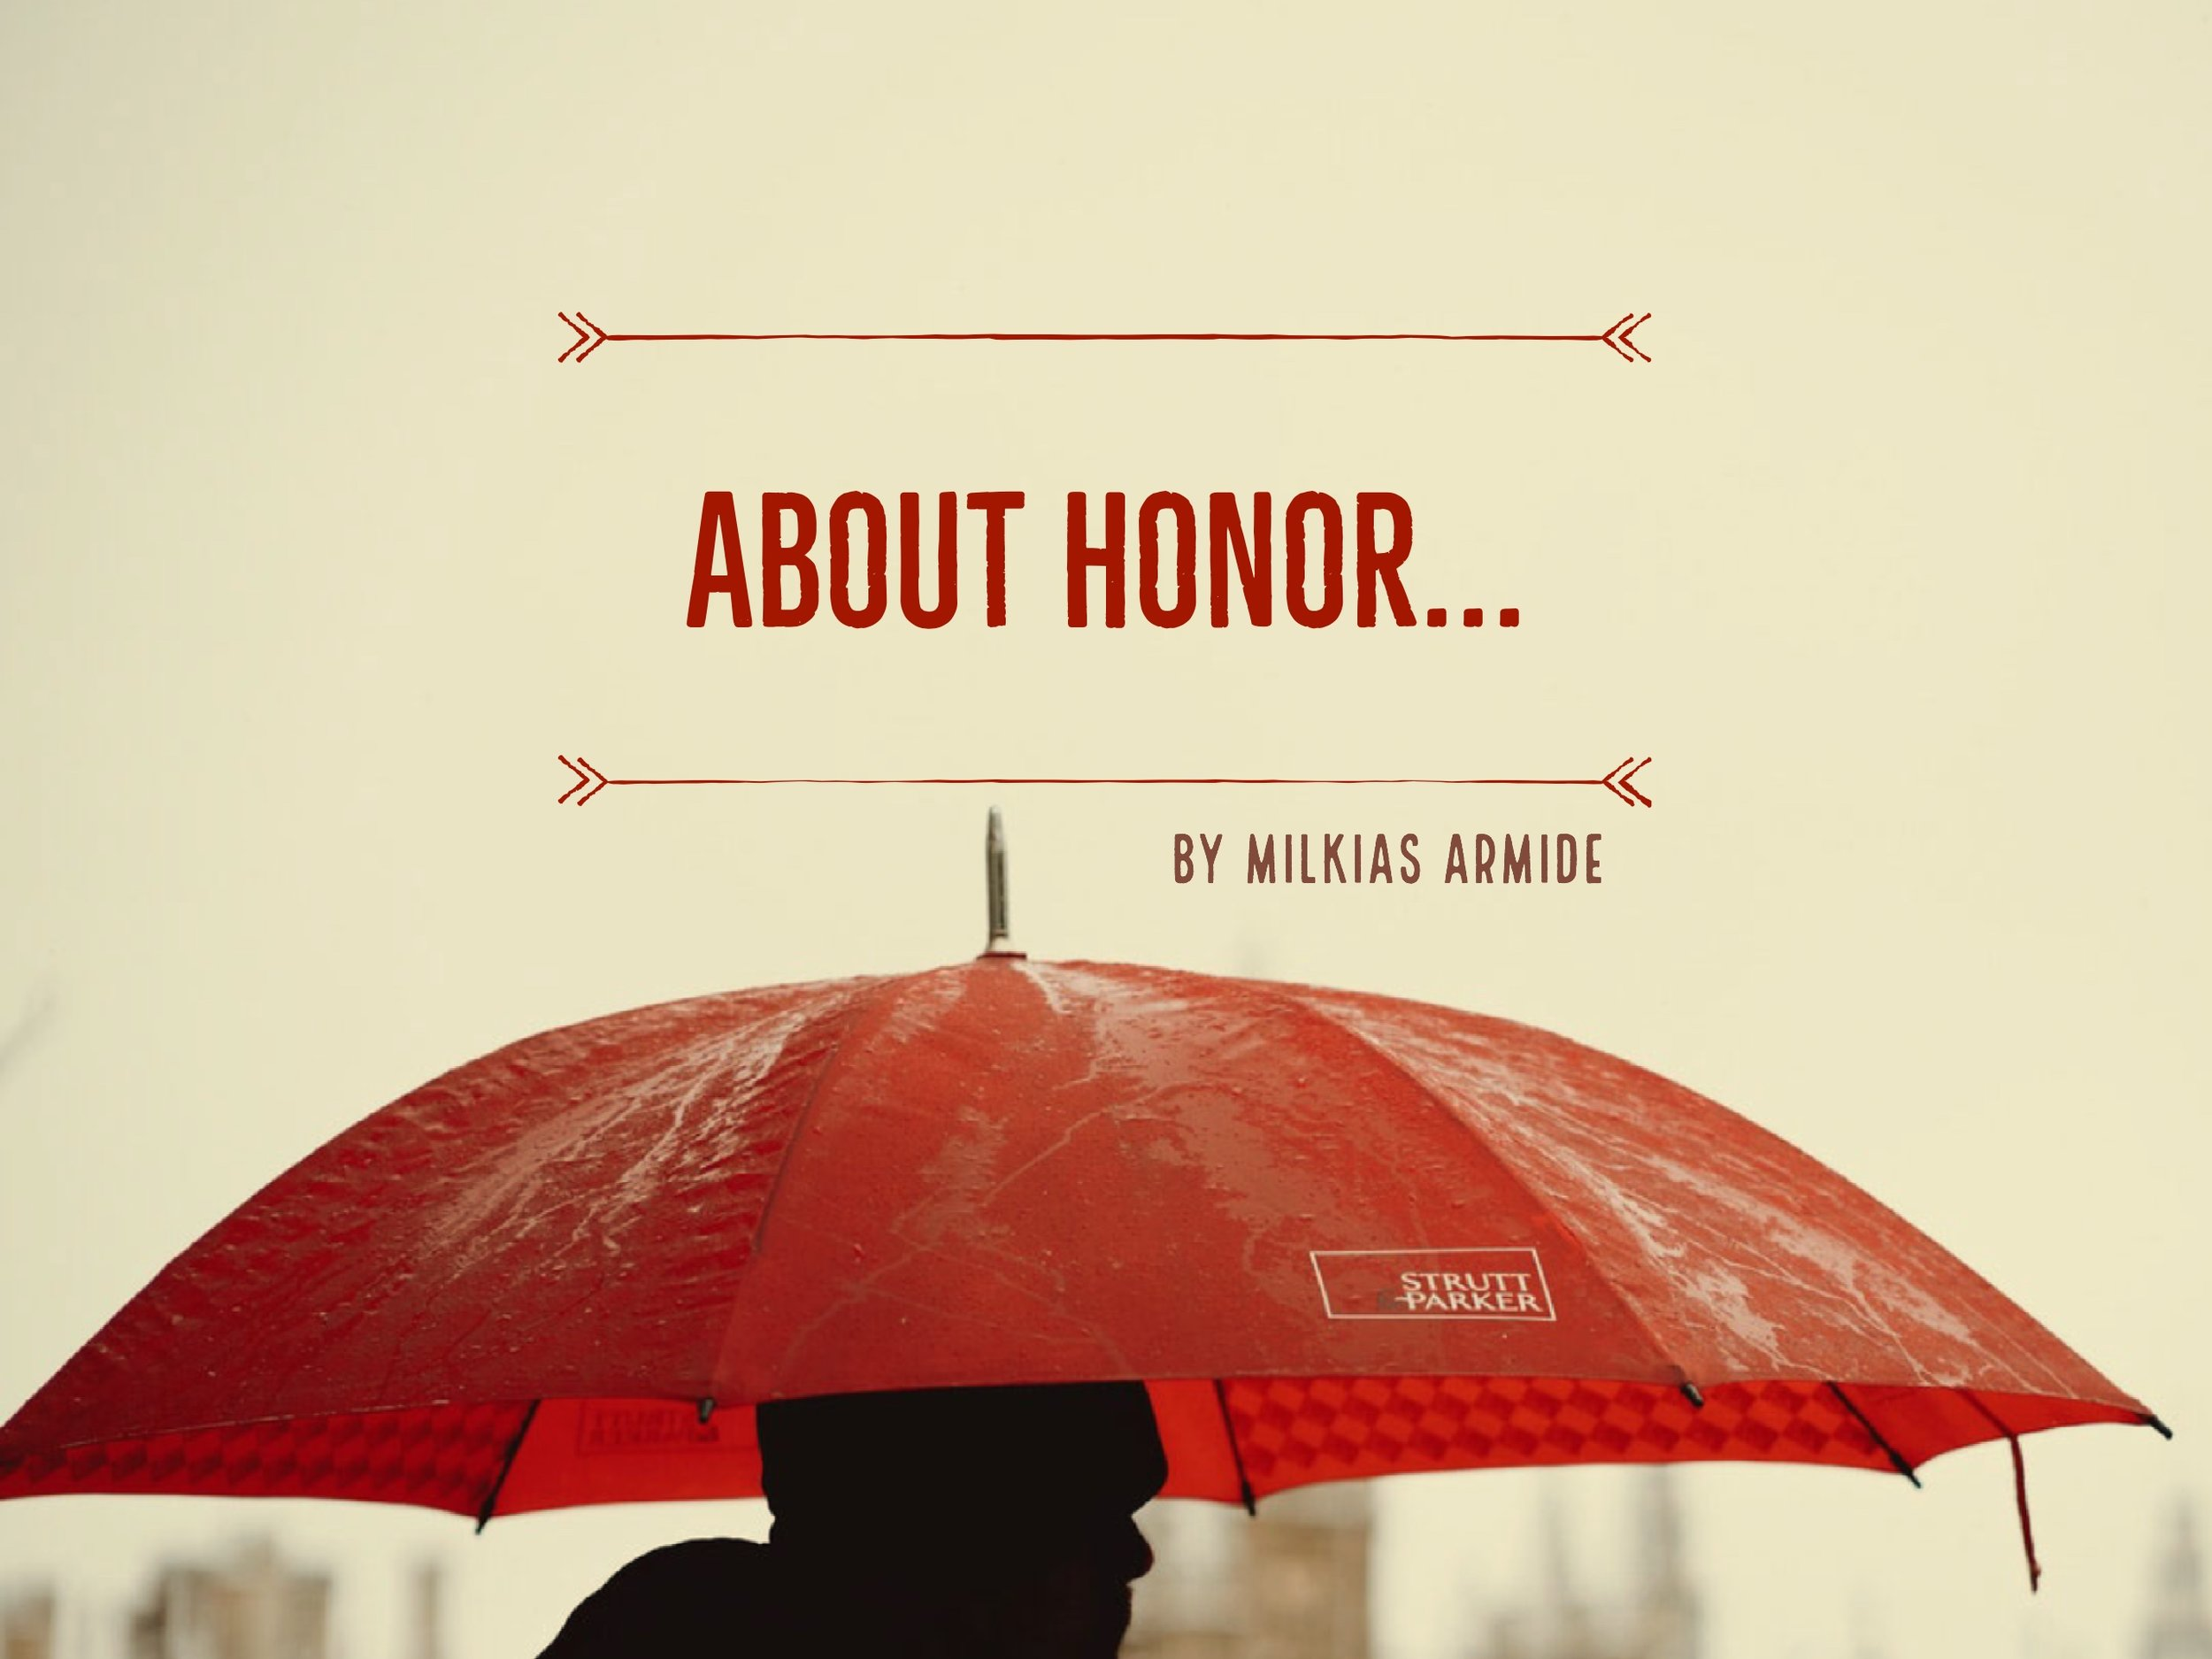 About Honor...